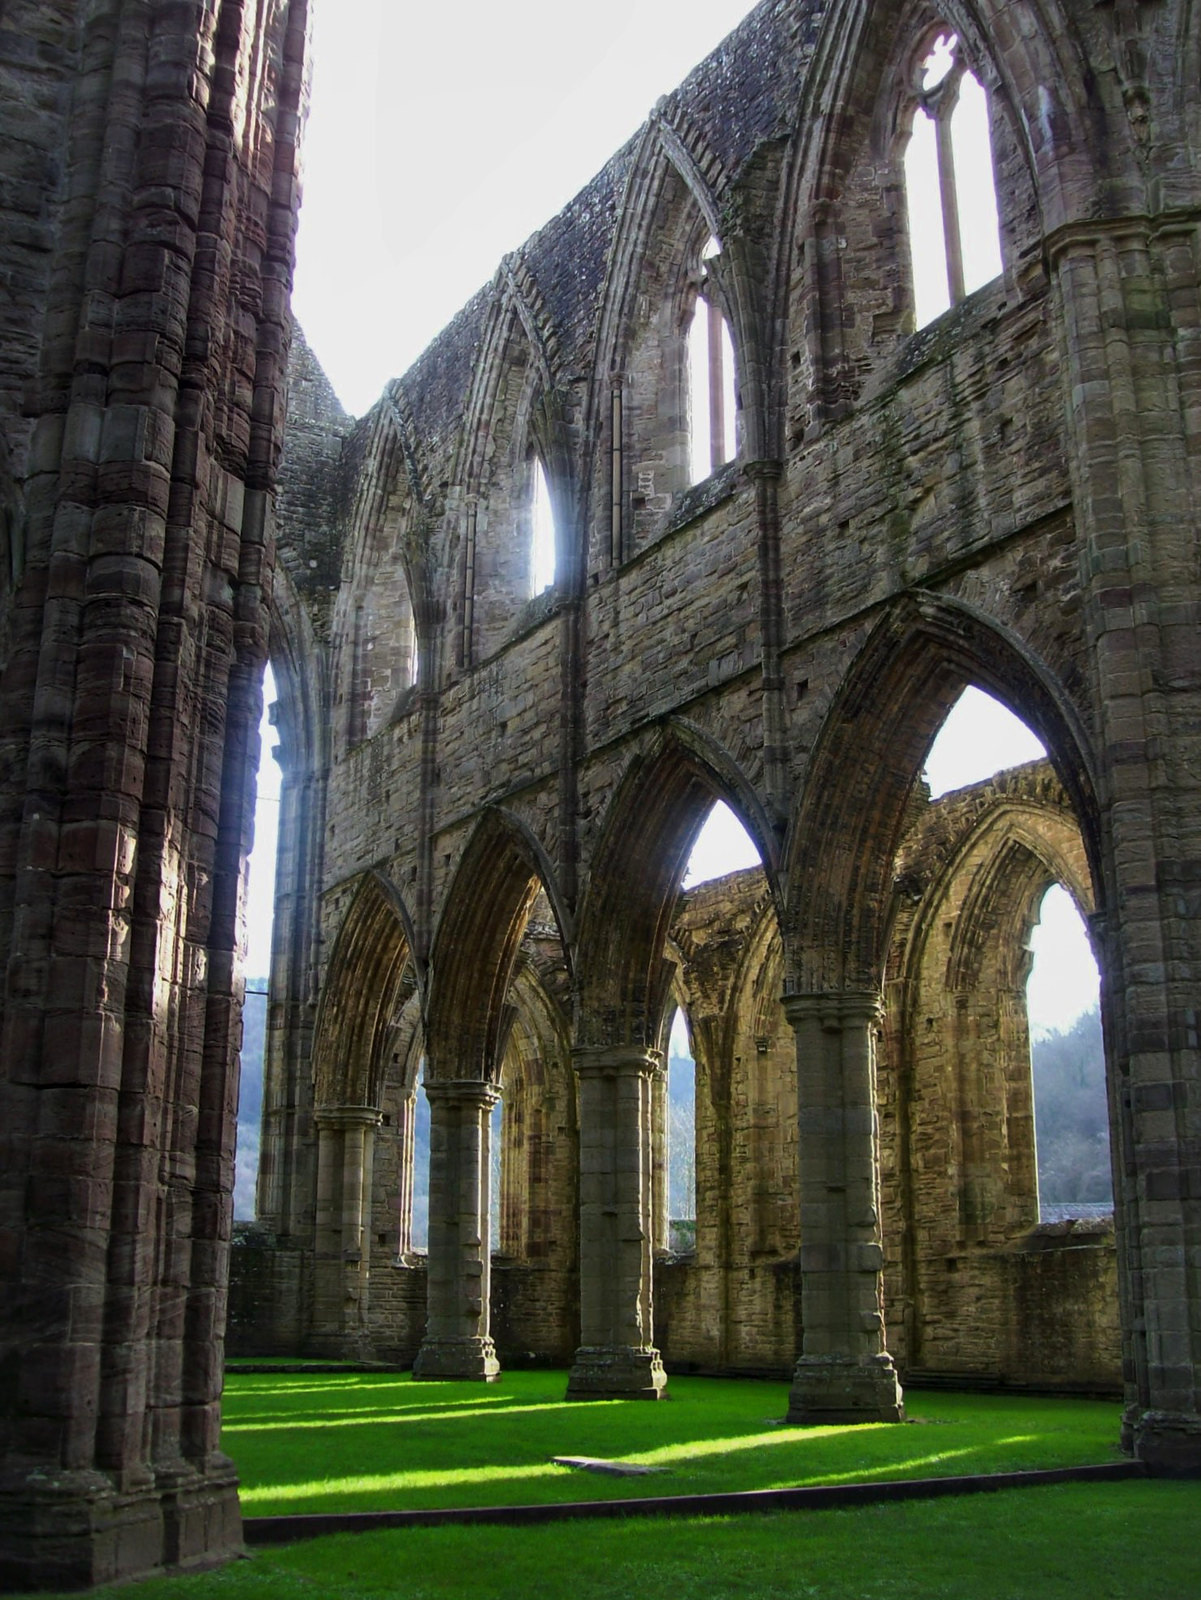 The nave, Tintern Abbey. Credit Poliphilo